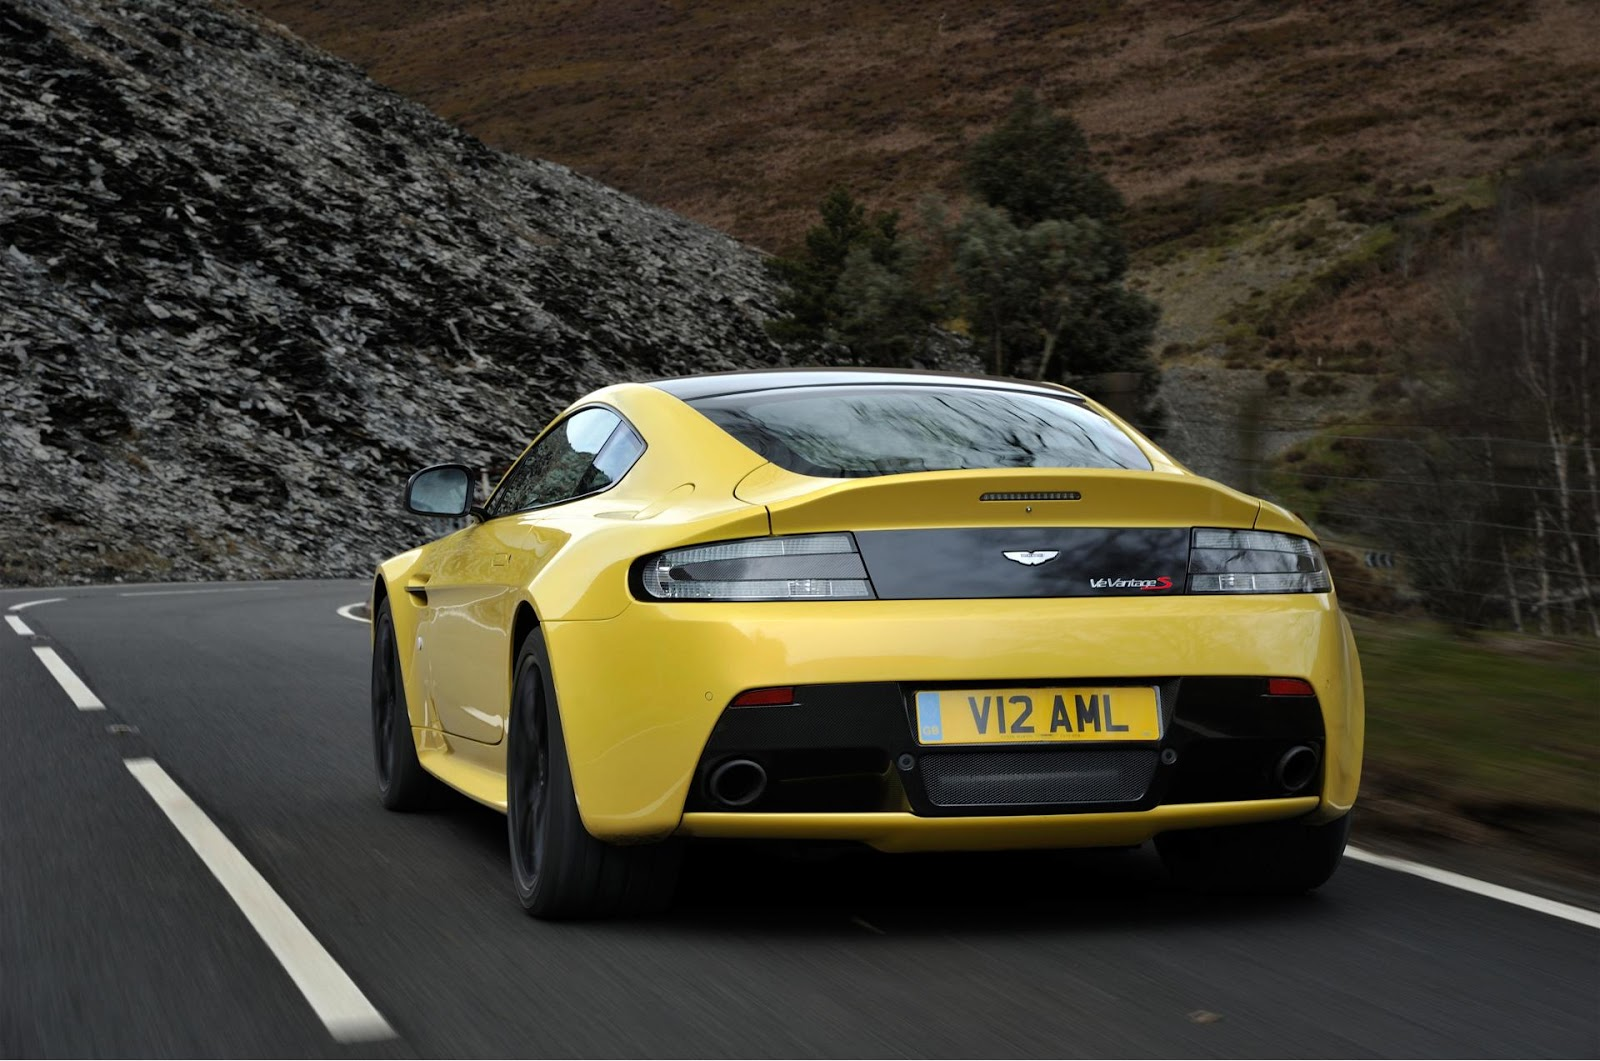 aston martin v12 vantage s 2014 hottest car wallpapers bestgarage. Black Bedroom Furniture Sets. Home Design Ideas